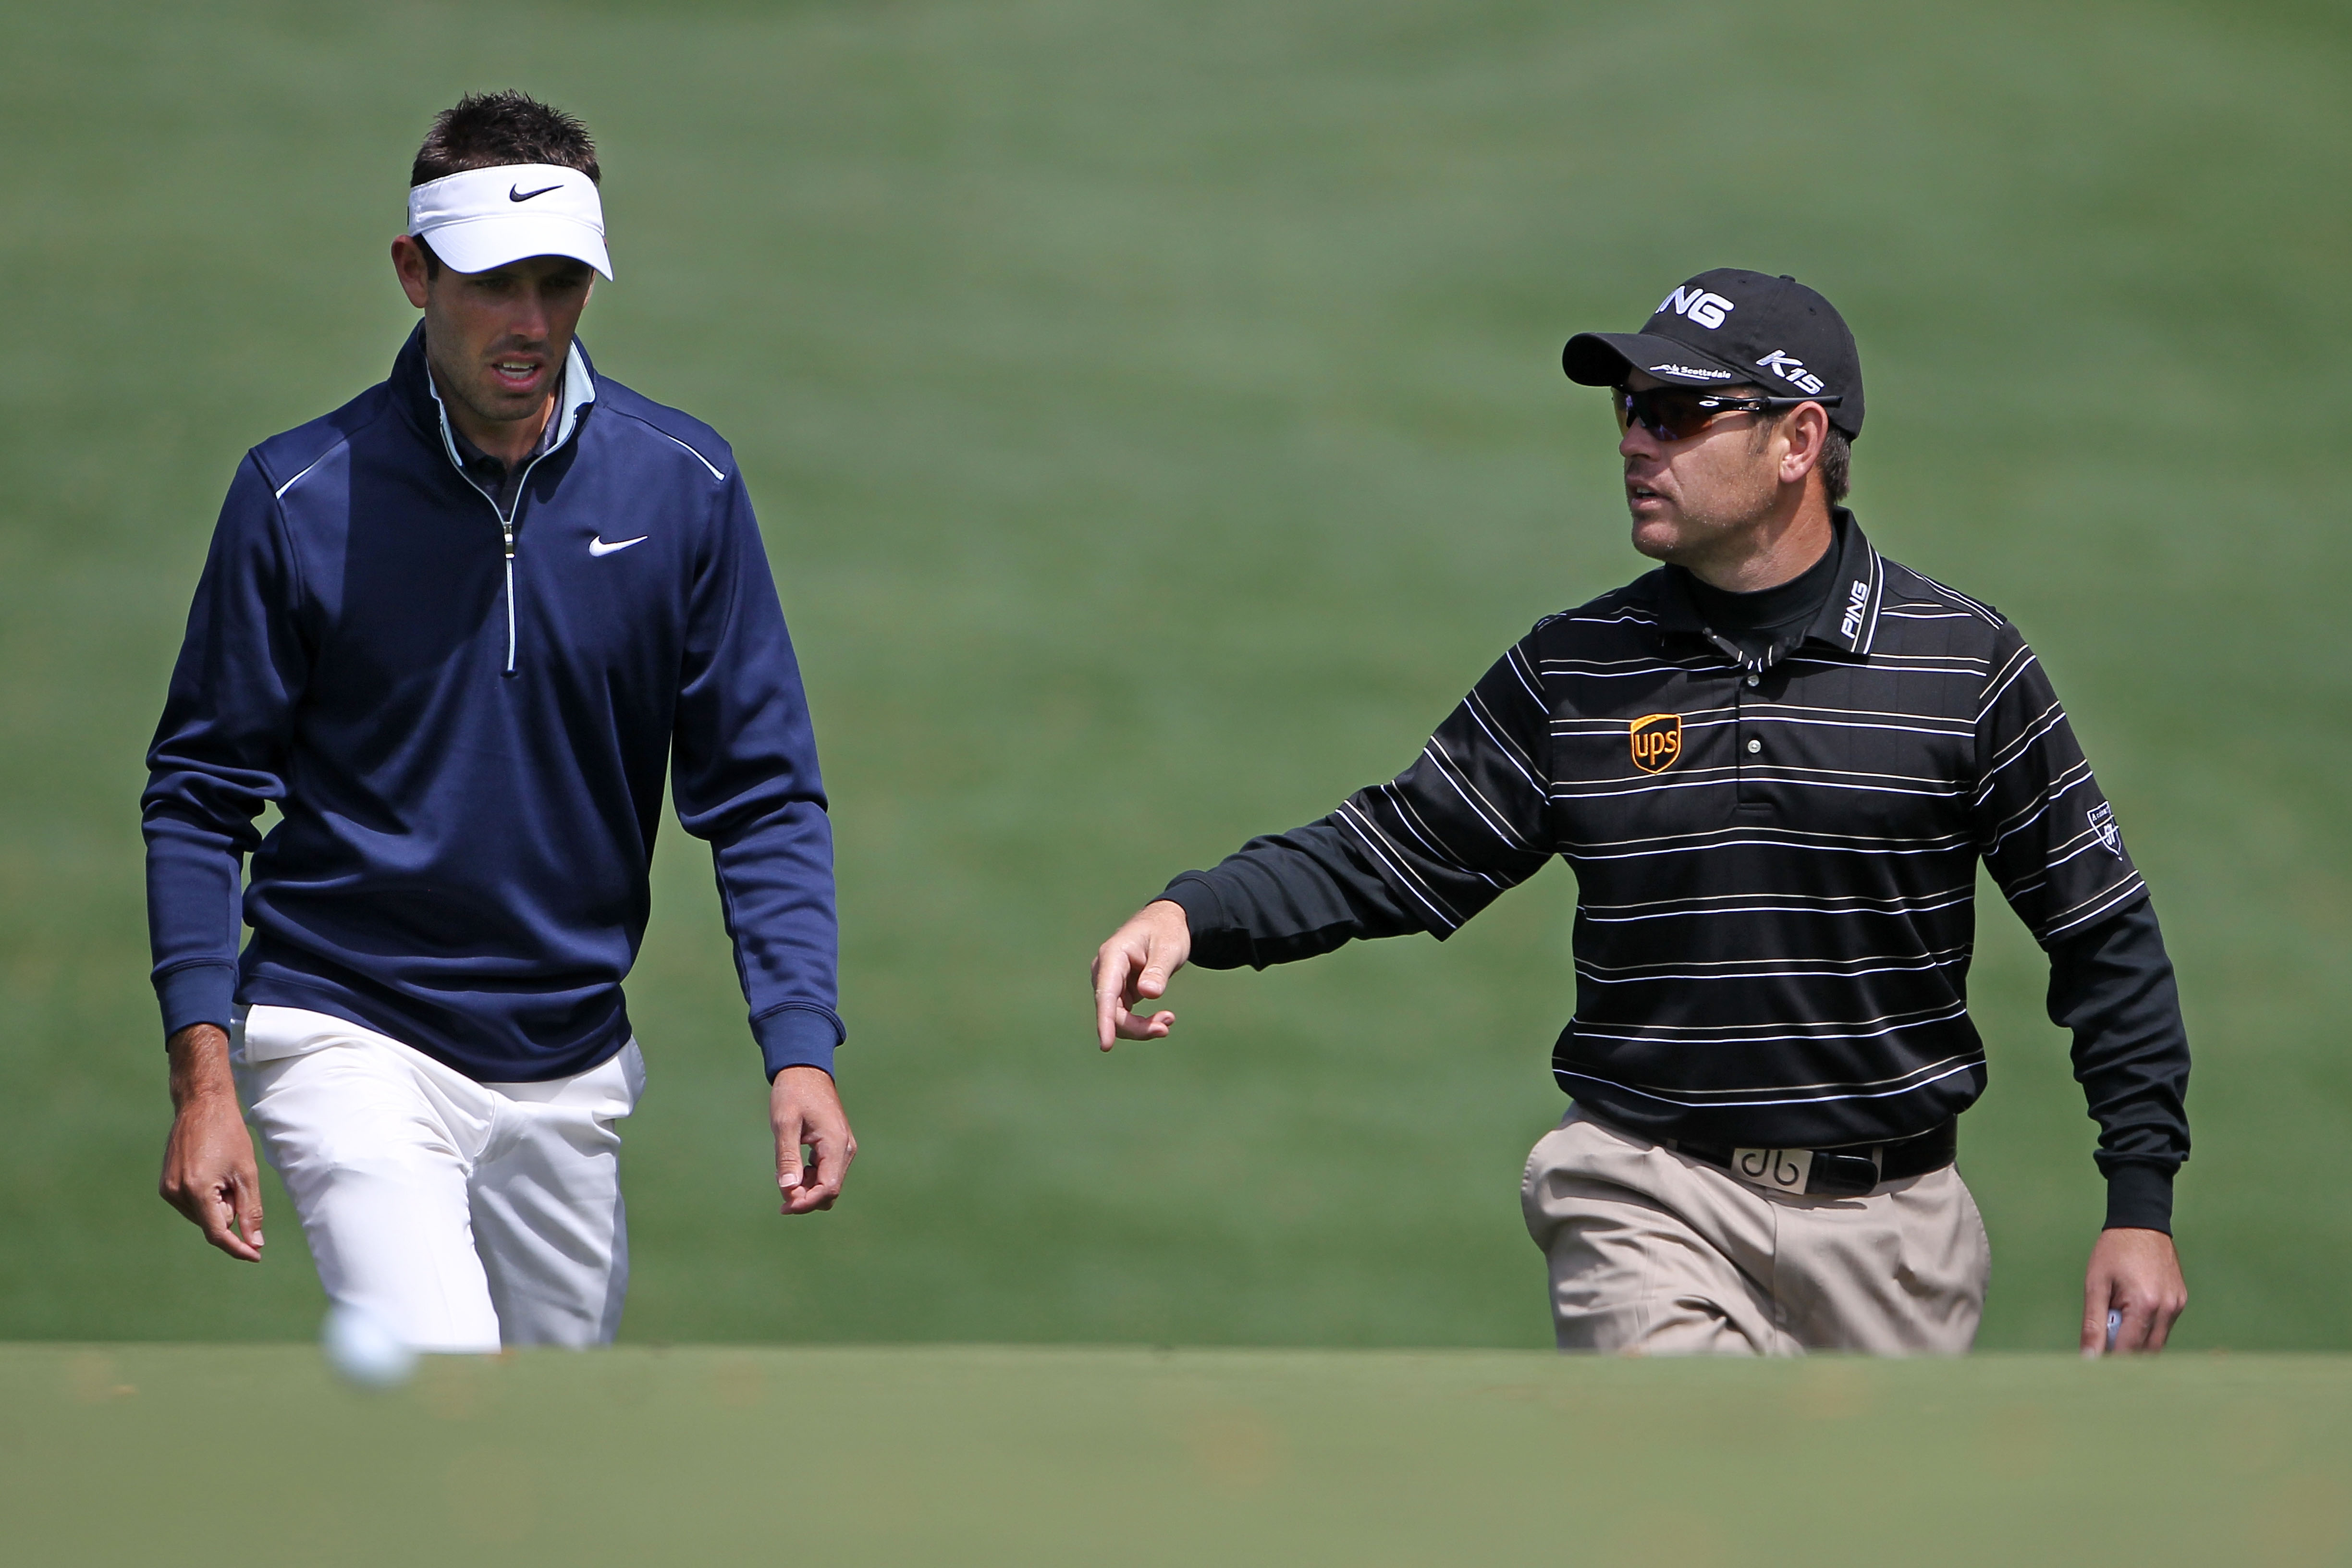 Charl Schwartzel (L) and Louis Oosthuizen of South Africa walk to a green during a practice round prior to the 2011 Masters Tournament at Augusta National Golf Club on April 5, 2011 in Augusta, Georgia.